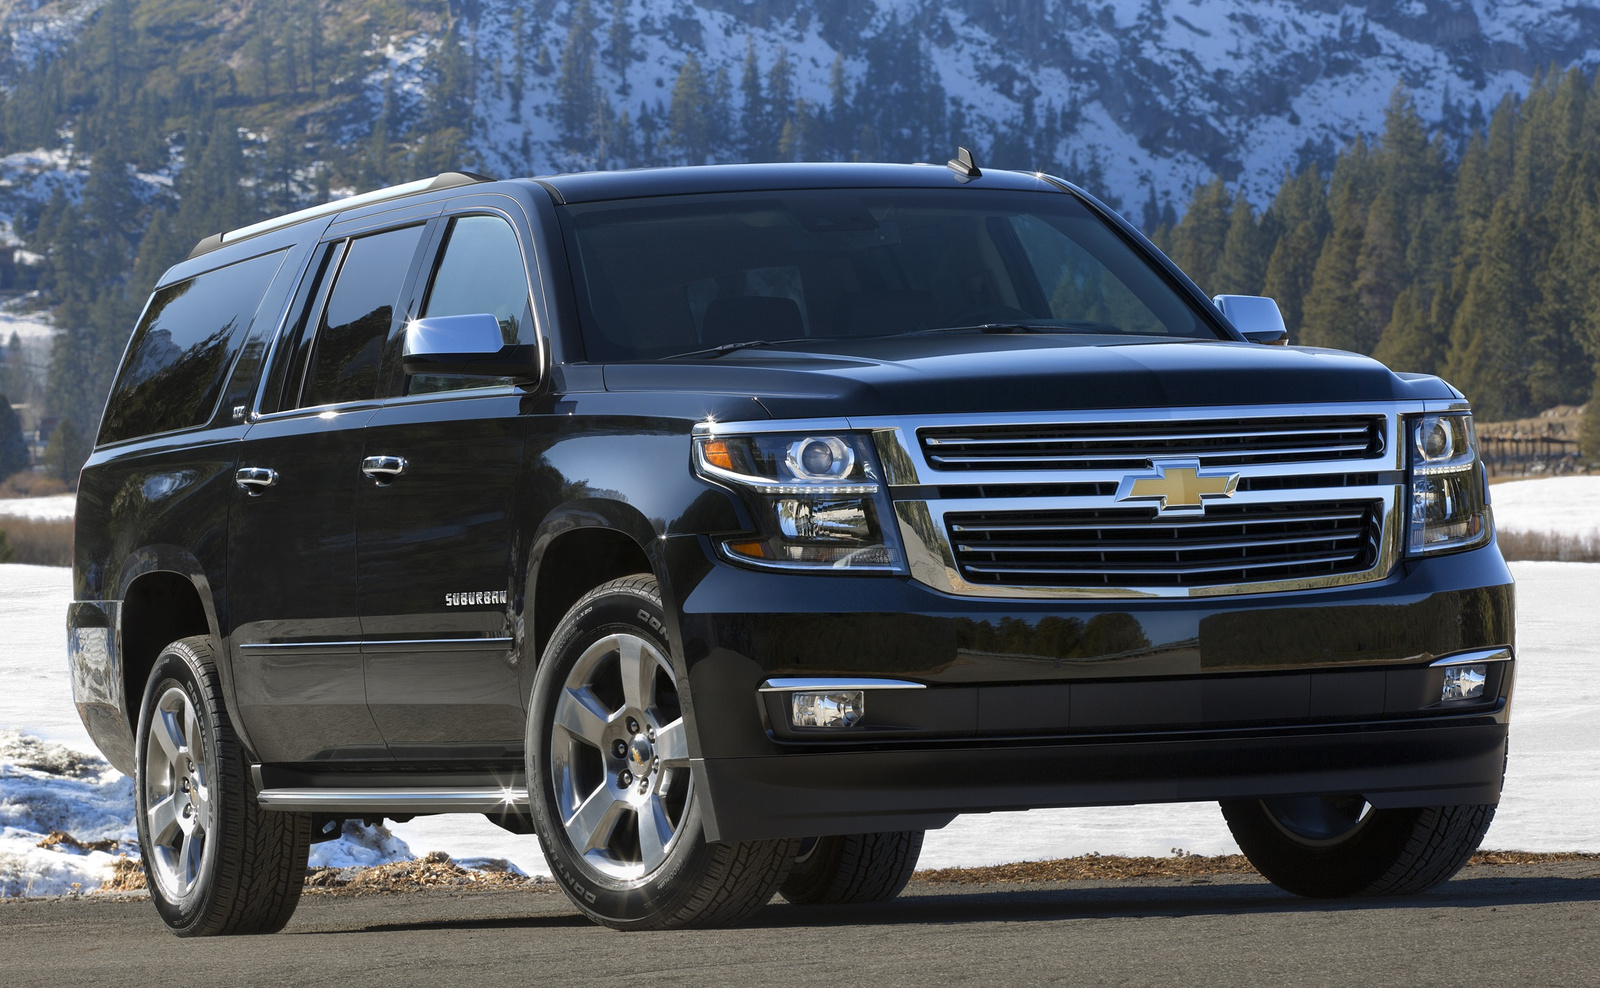 2015 chevrolet suburban pictures cargurus. Black Bedroom Furniture Sets. Home Design Ideas